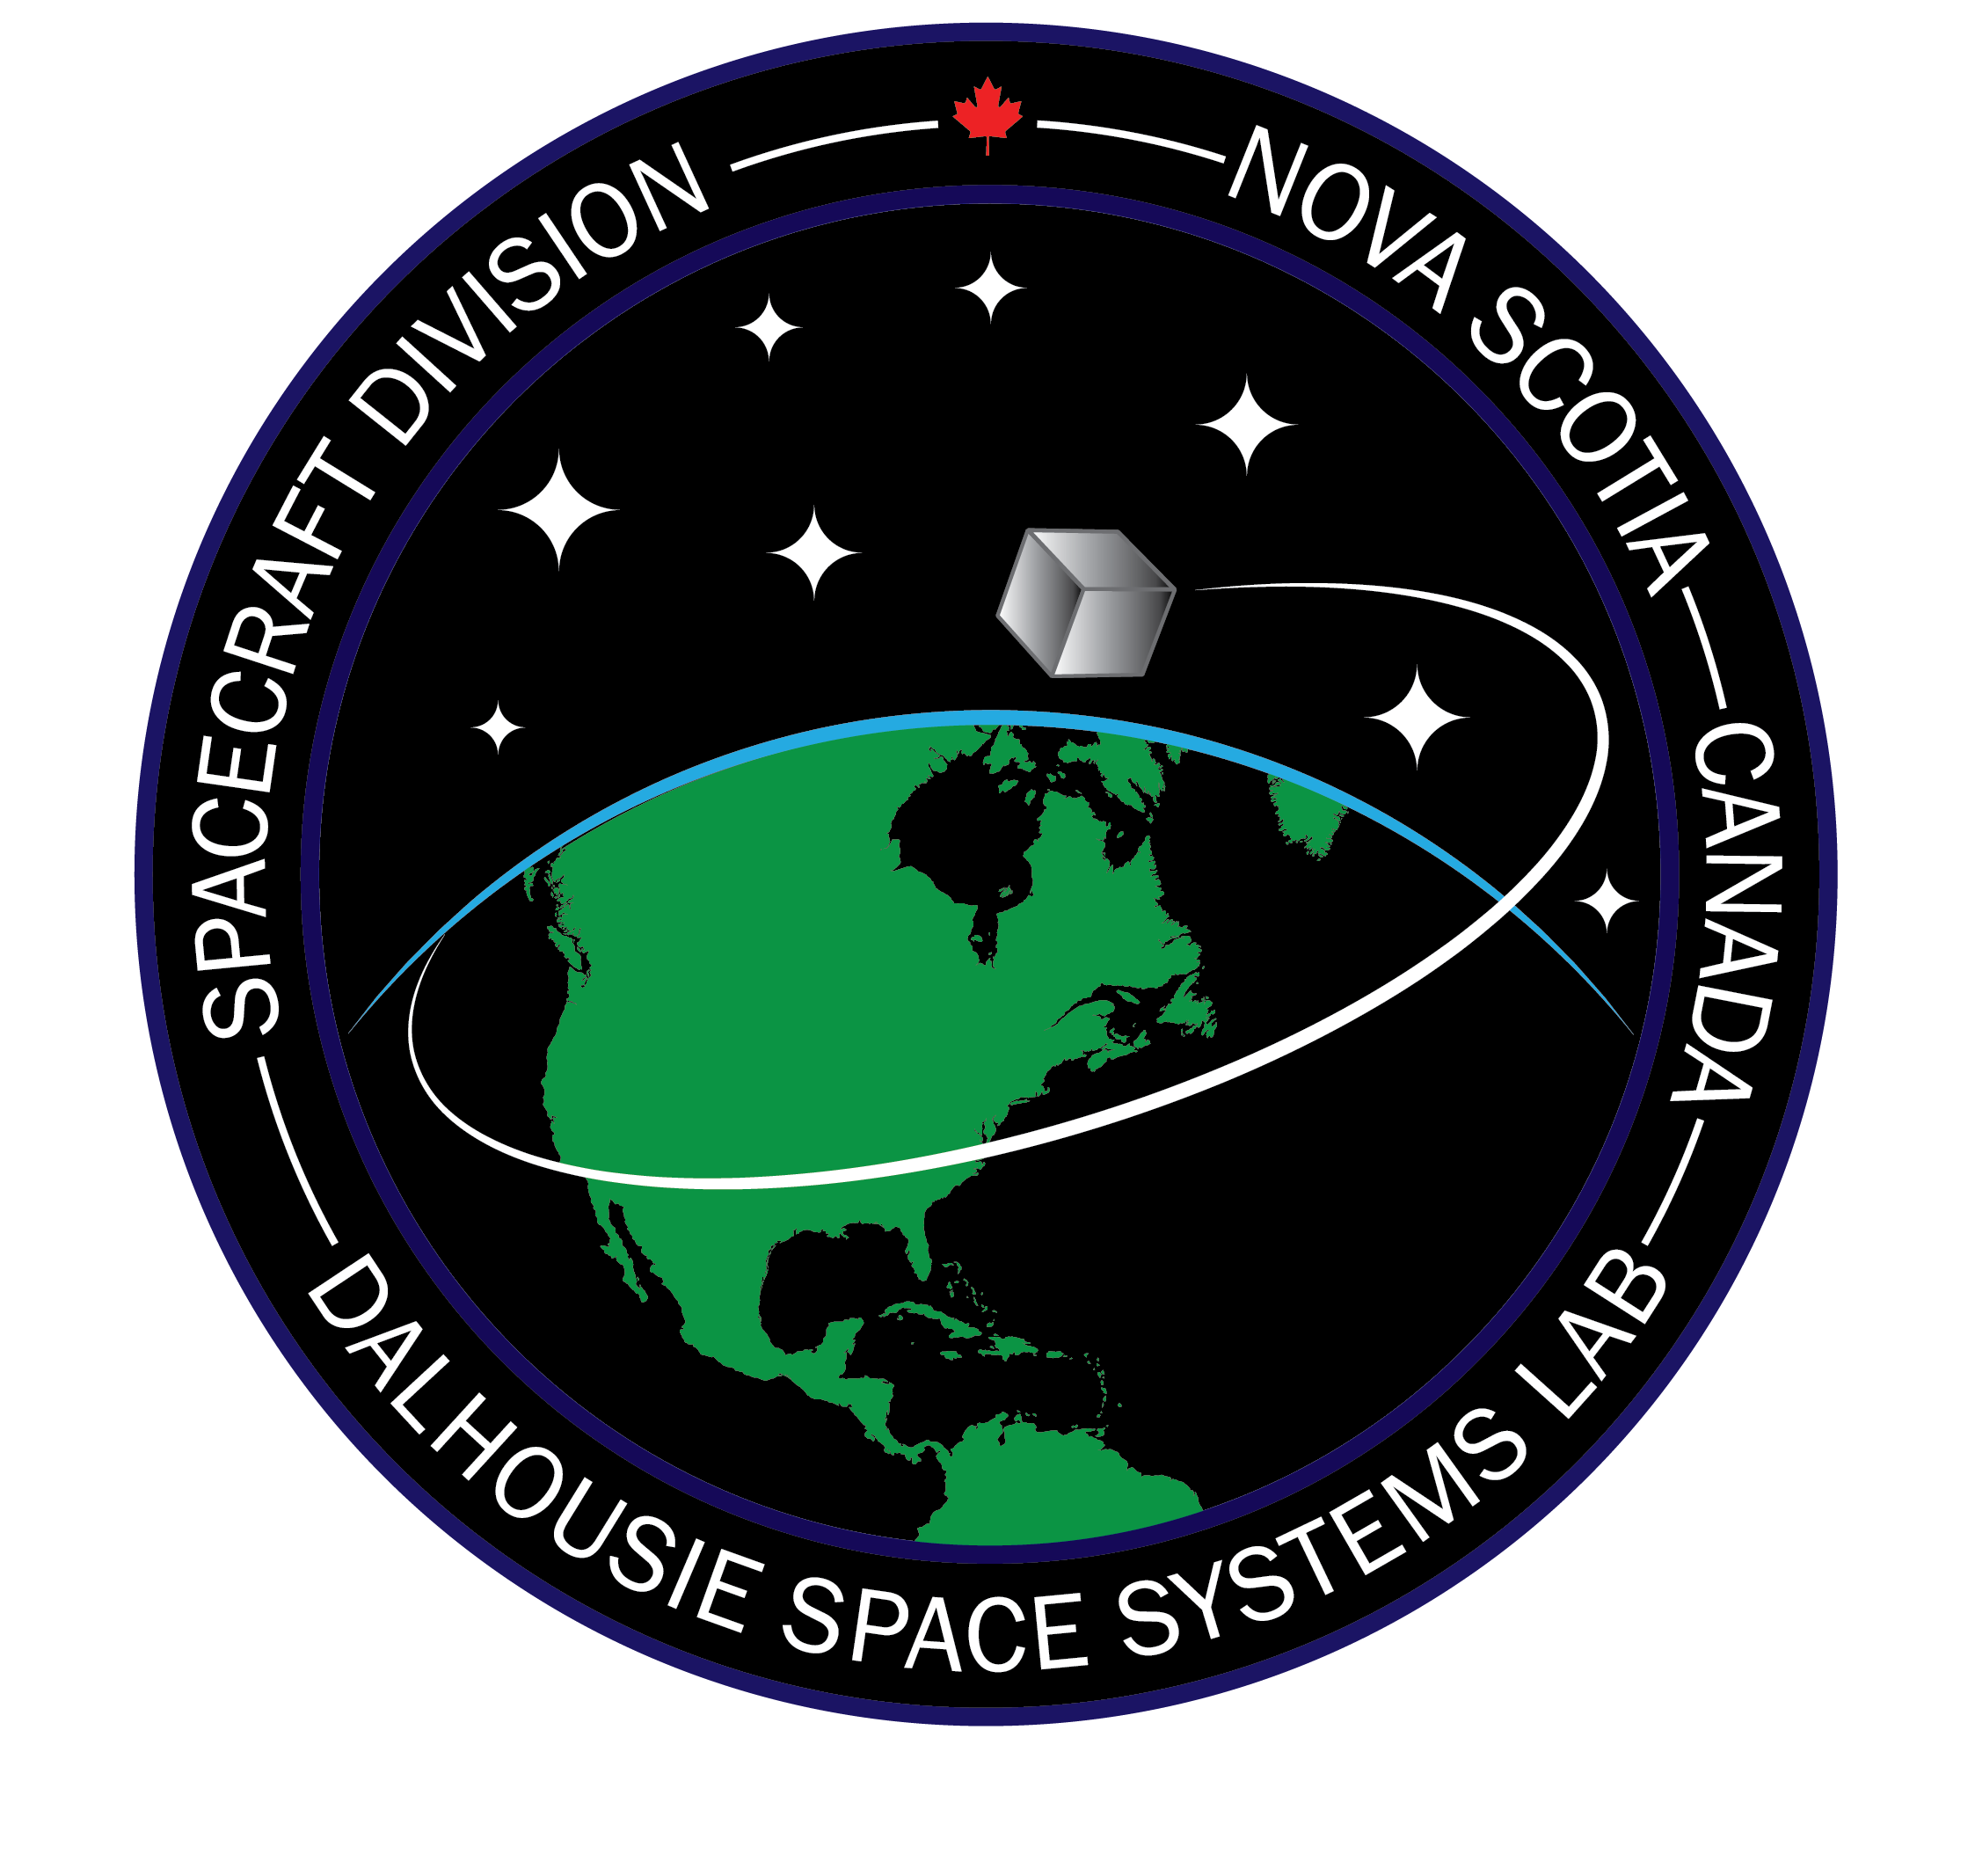 Spacecraft Division